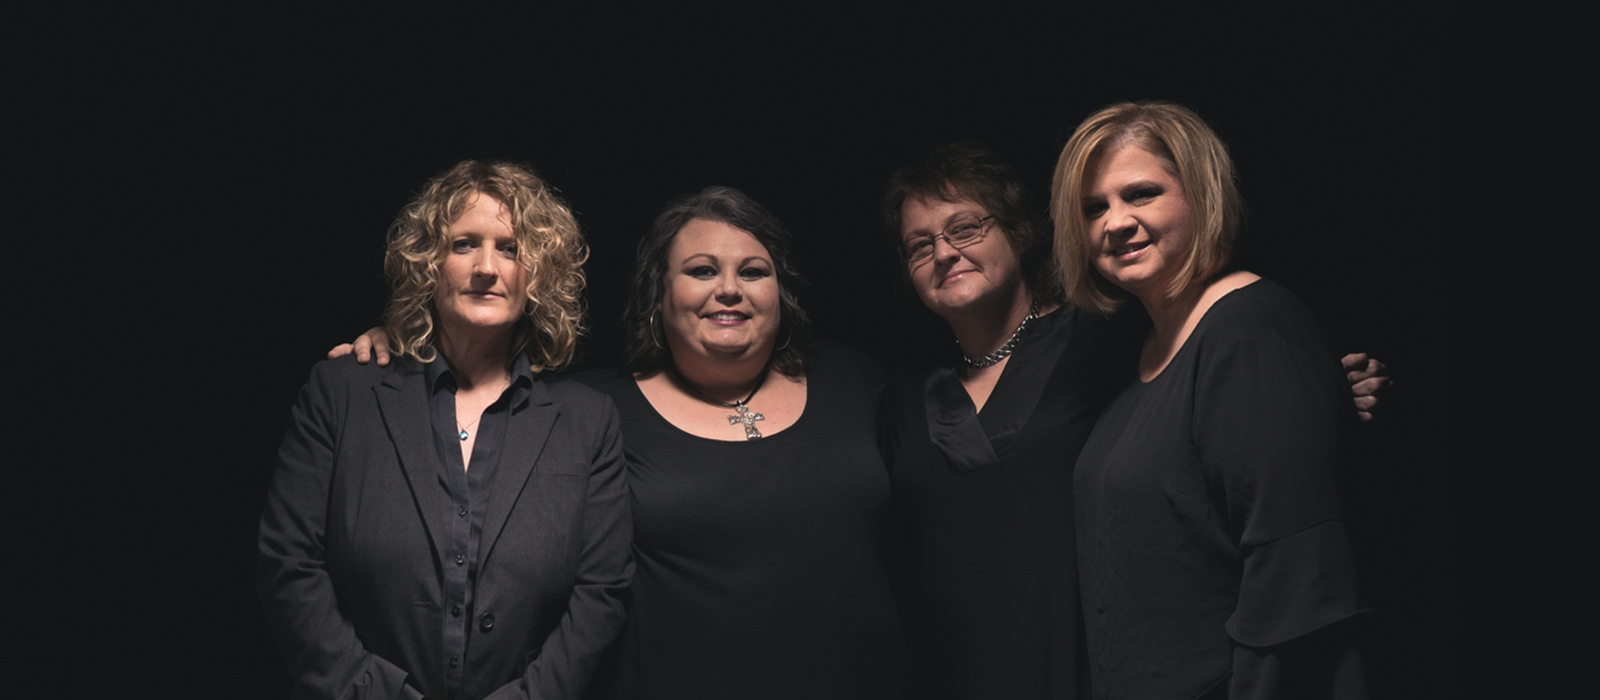 Group photo of Dishman's Band Sister Sadie